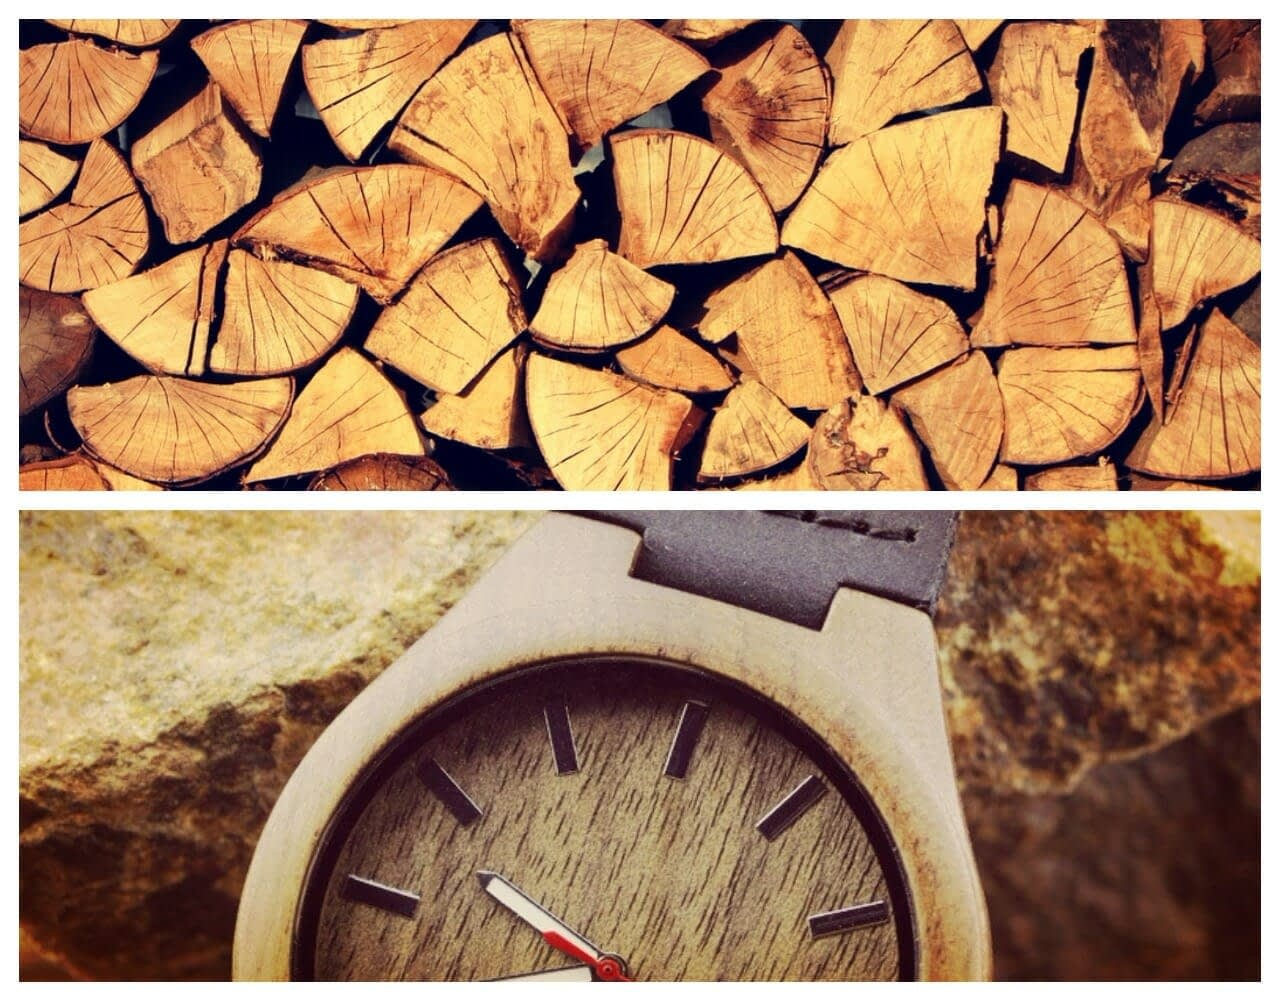 Trendy, Unique And Eco-friendly: A Watch Made Of Wood